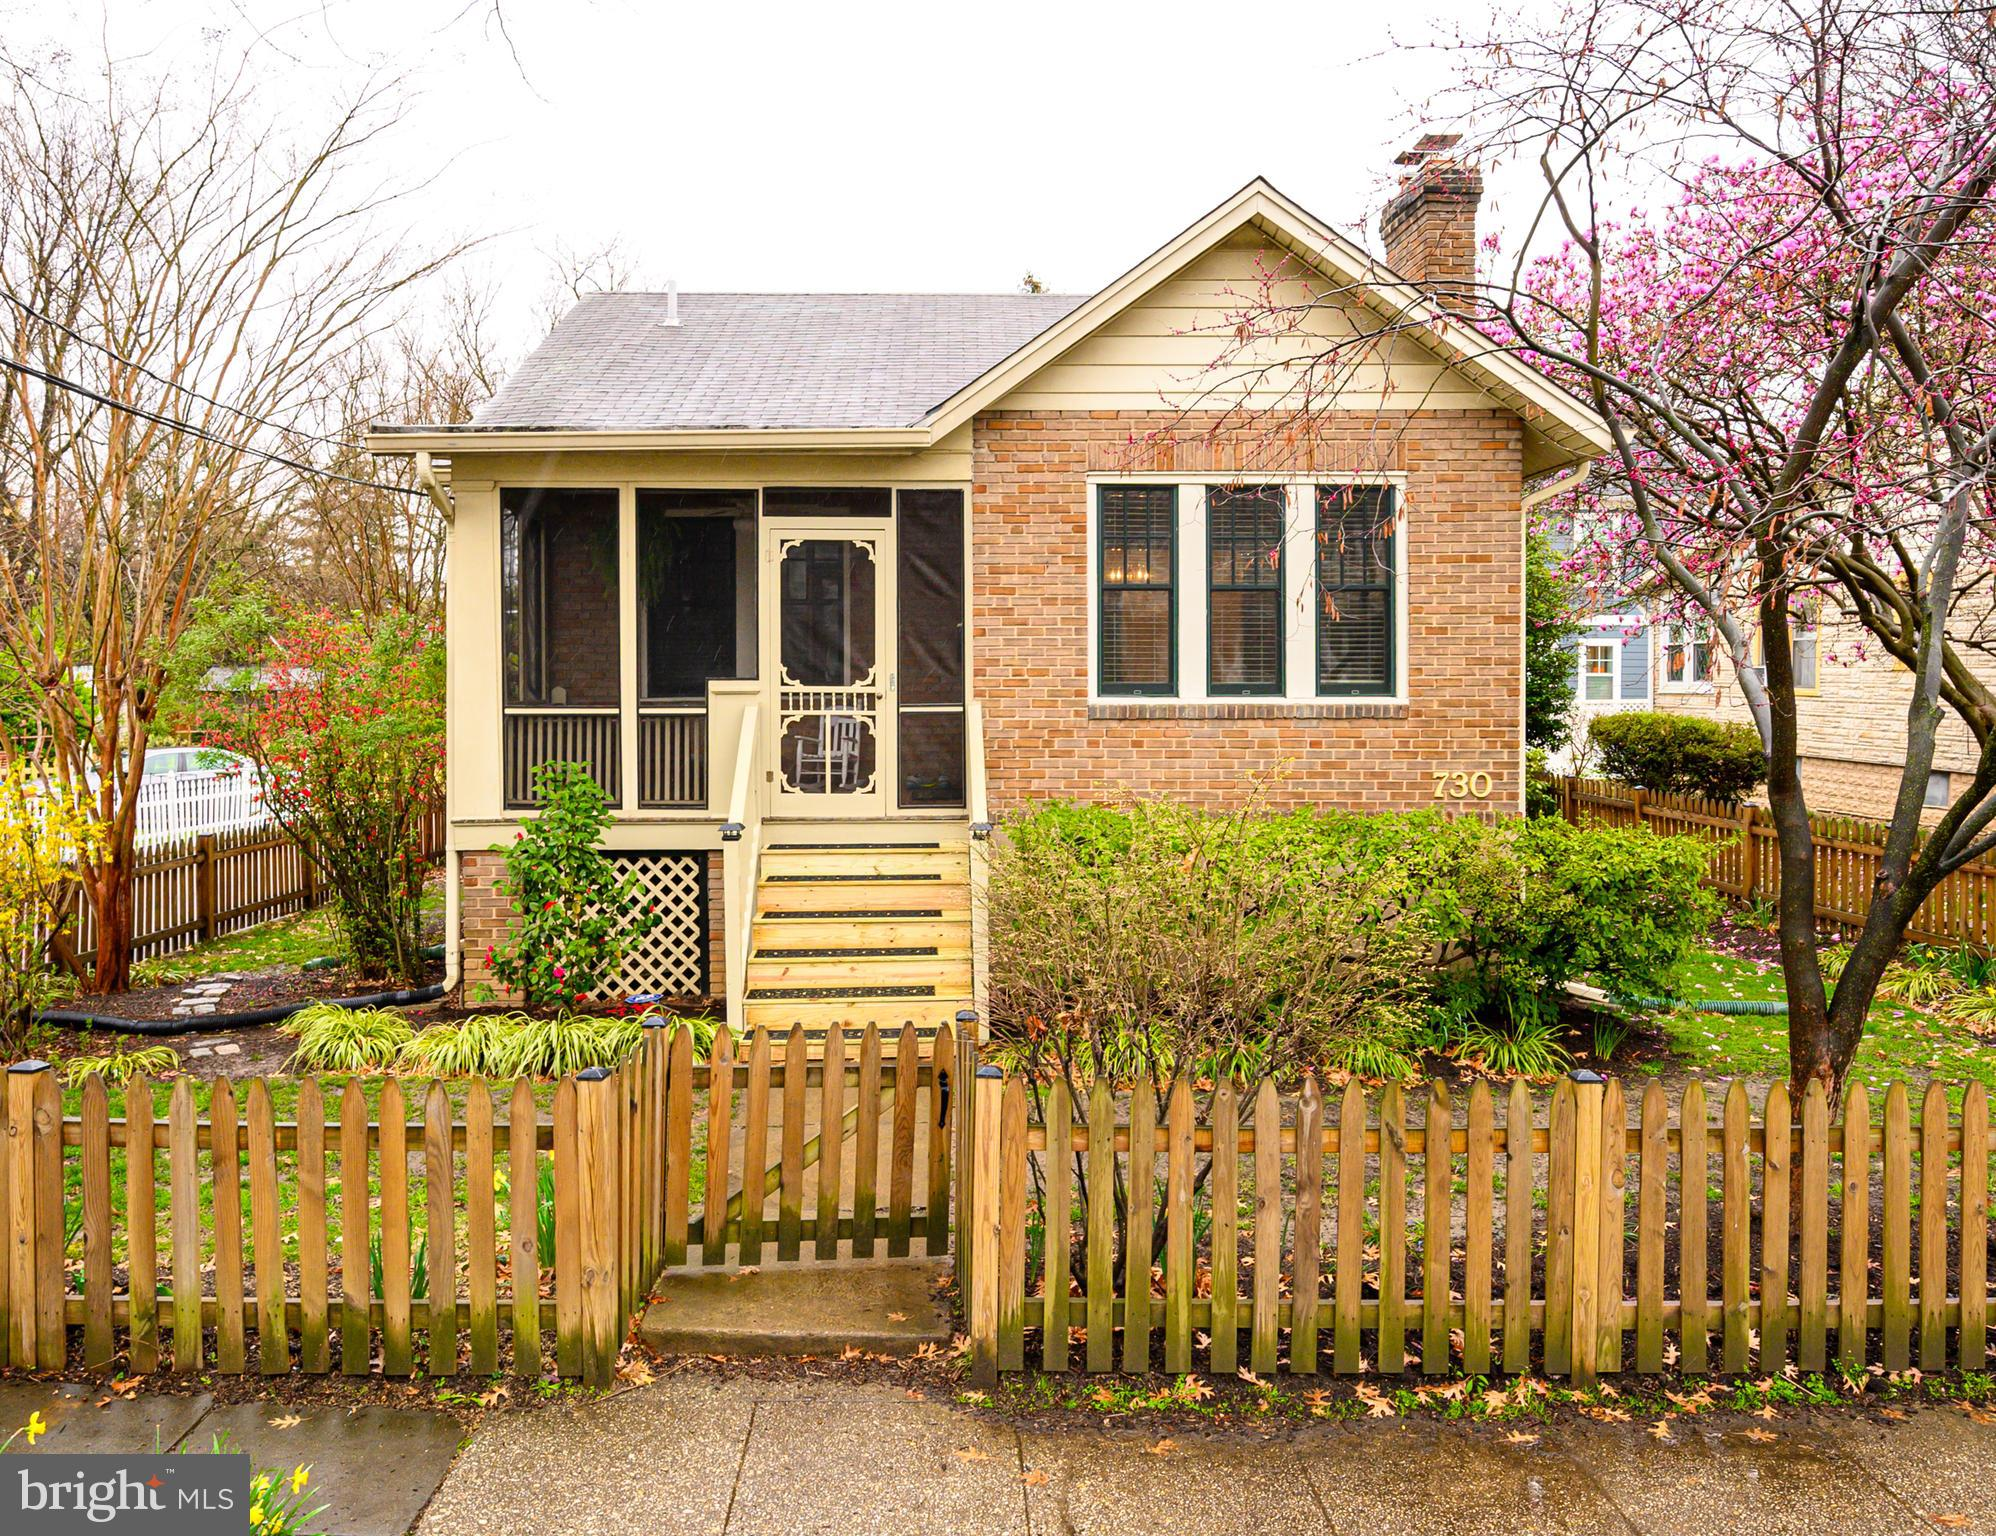 Offer Deadline Thursday 3/26 at 5pm.  Quintessential Takoma Bungalow! Lovingly cared for and updated by two previous families, this sweet home is ready for its next owner. Original moldings, doors, crystal doorknobs. Pella wood windows. Spend weekends relaxing on the breezy screened porch. Living room and Dining room spaces open to each other for fluid entertaining. Beautiful vintage kitchen cabinets provide floor to ceiling storage, plus walk-in pantry. Renovated bath. Two ample sized bedrooms on main level; finished attic space for additional sleeping space, home office, or crafts with generous under eave storage. Basement offers additional storage space plus rec room and laundry. Large attached garage/workshop for bike or stroller storage, home gym equipment; workbench for tinkering conveys. Professionally landscaped yard with great potential for gardening and rear driveway for easy unloading.Three blocks from Walter Reed town center and two libraries; Target and Rock Creek Park just a few steps more. Old Town Takoma shopping and dining within easy walking distance; 10 min walk to Metro.Owner/designer will convey architectural drawings to add bathrooms, bedrooms and thoughtfully expand home.